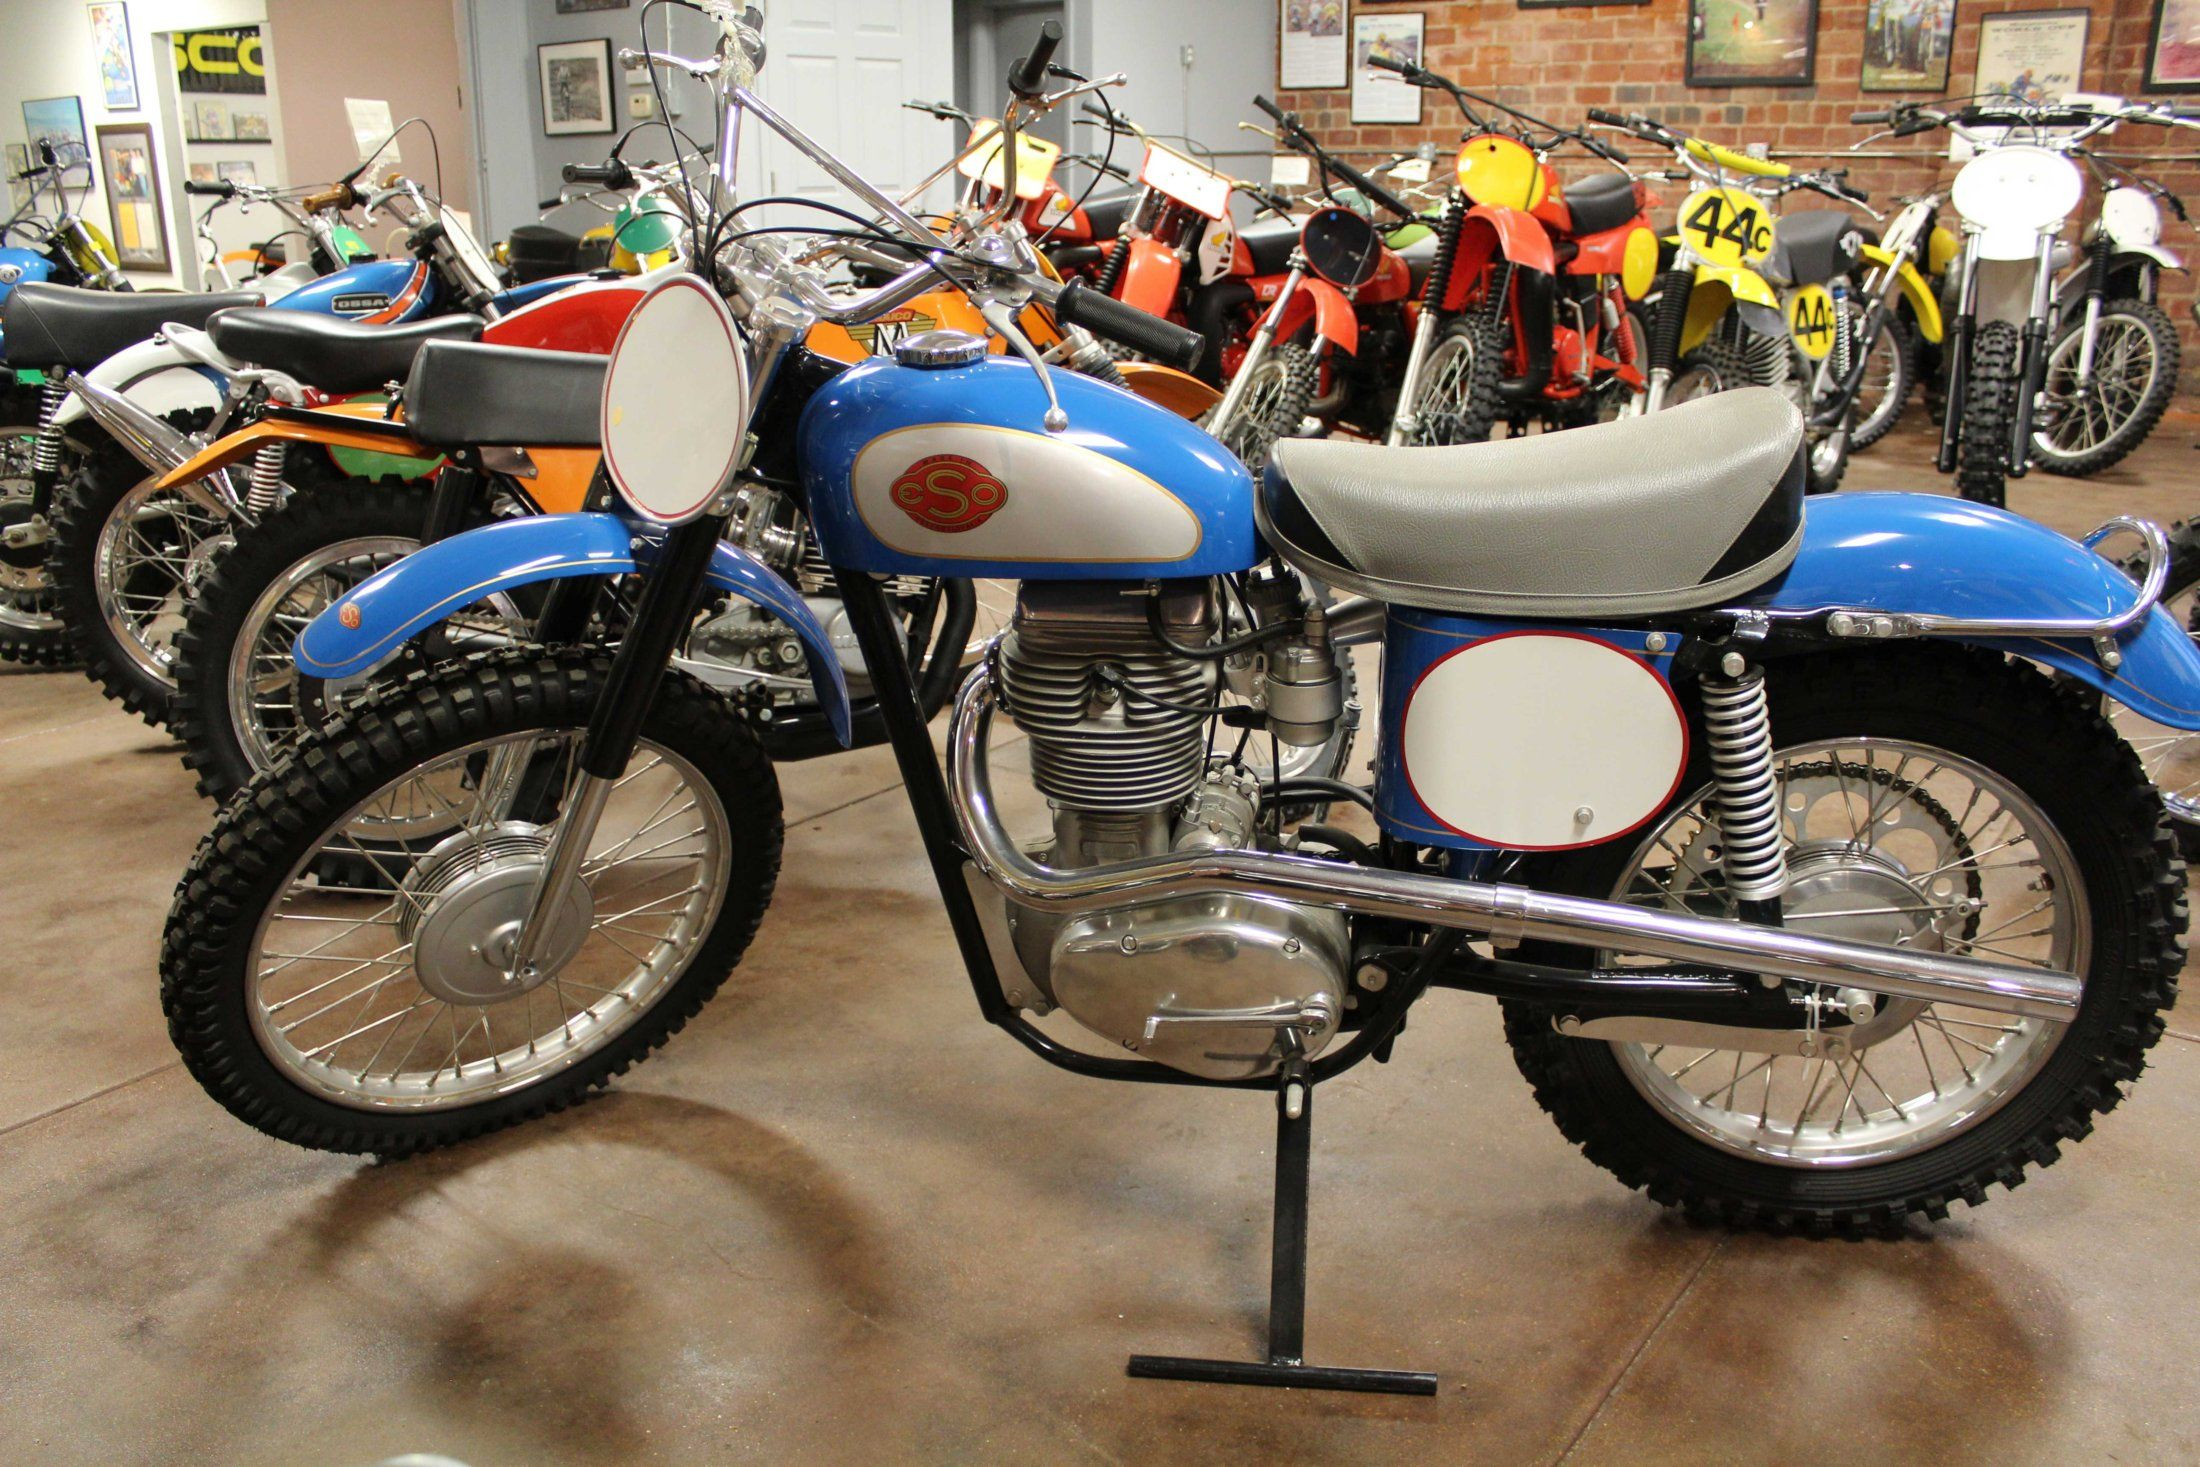 Eso Motorcycle Motorcycle manufacturers, Classic